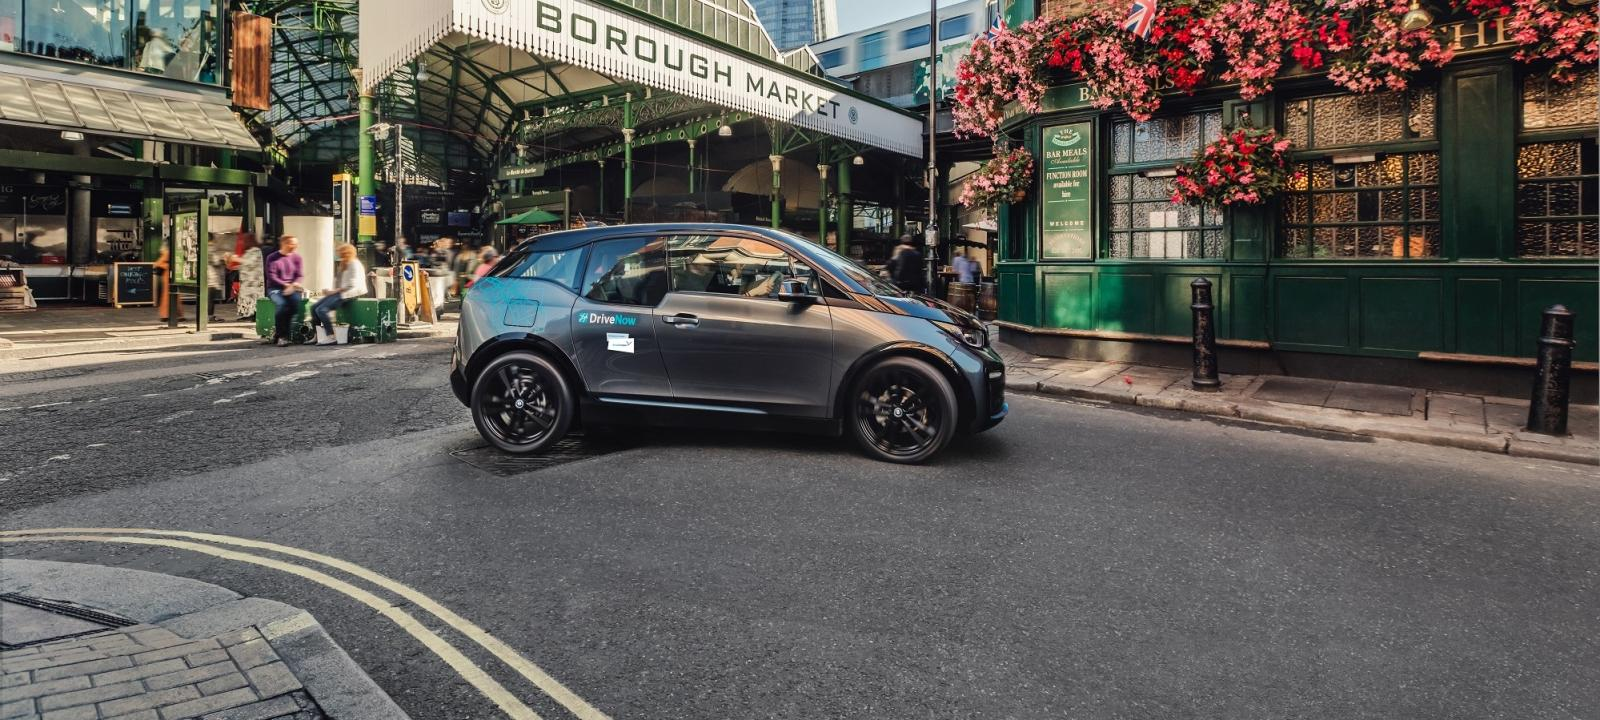 DriveNow_London_BMW_i3_Driving_02 - fürAbout13